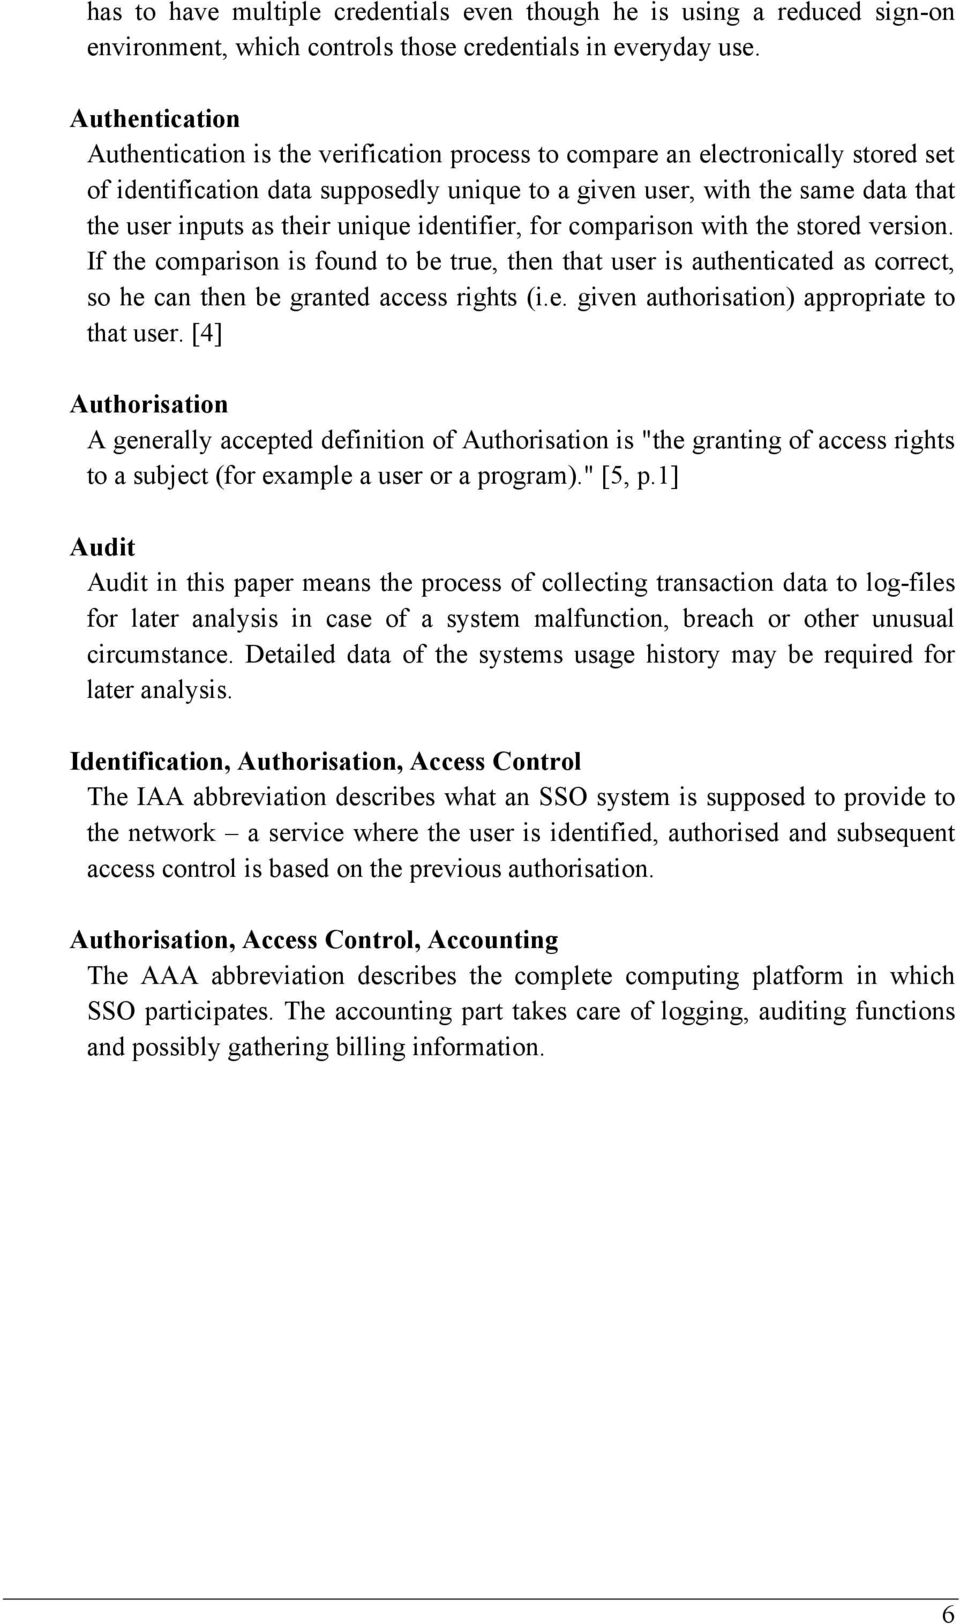 their unique identifier, for comparison with the stored version. If the comparison is found to be true, then that user is authenticated as correct, so he can then be granted access rights (i.e. given authorisation) appropriate to that user.